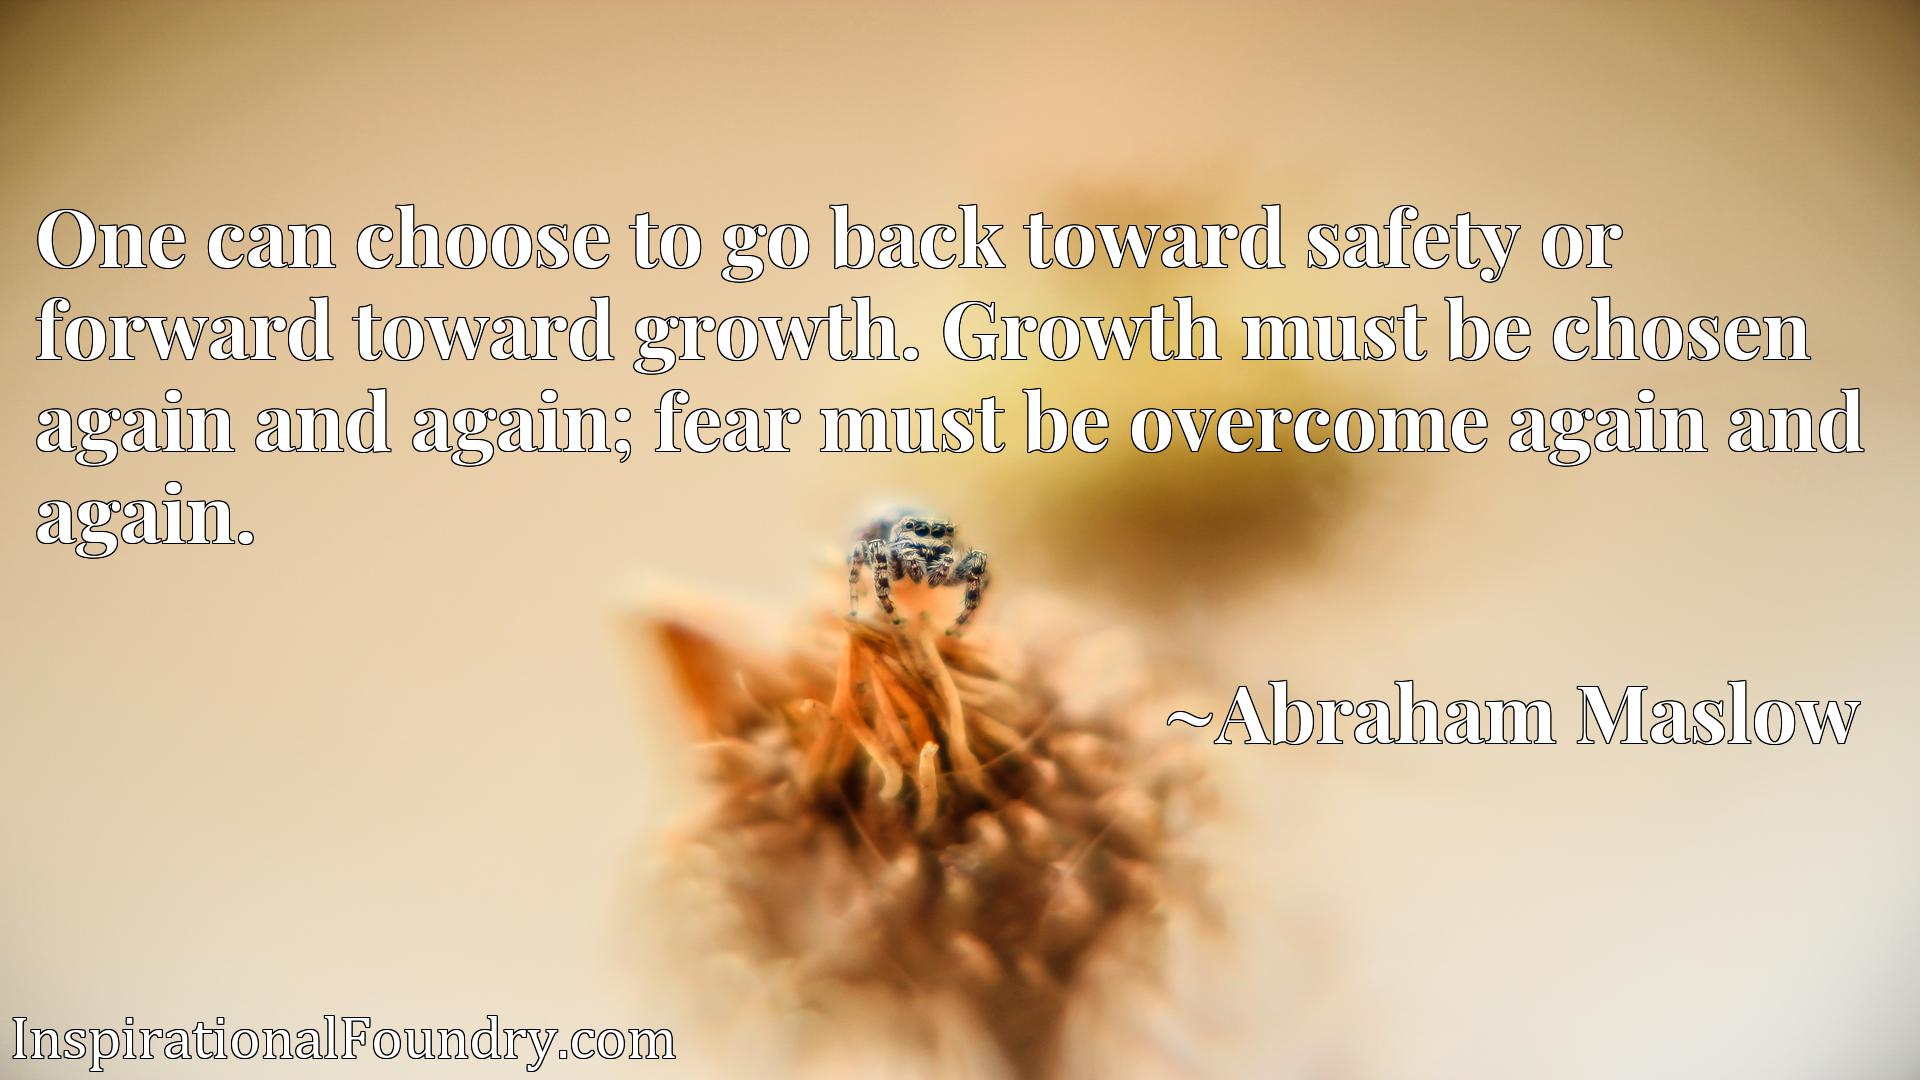 One can choose to go back toward safety or forward toward growth. Growth must be chosen again and again; fear must be overcome again and again.